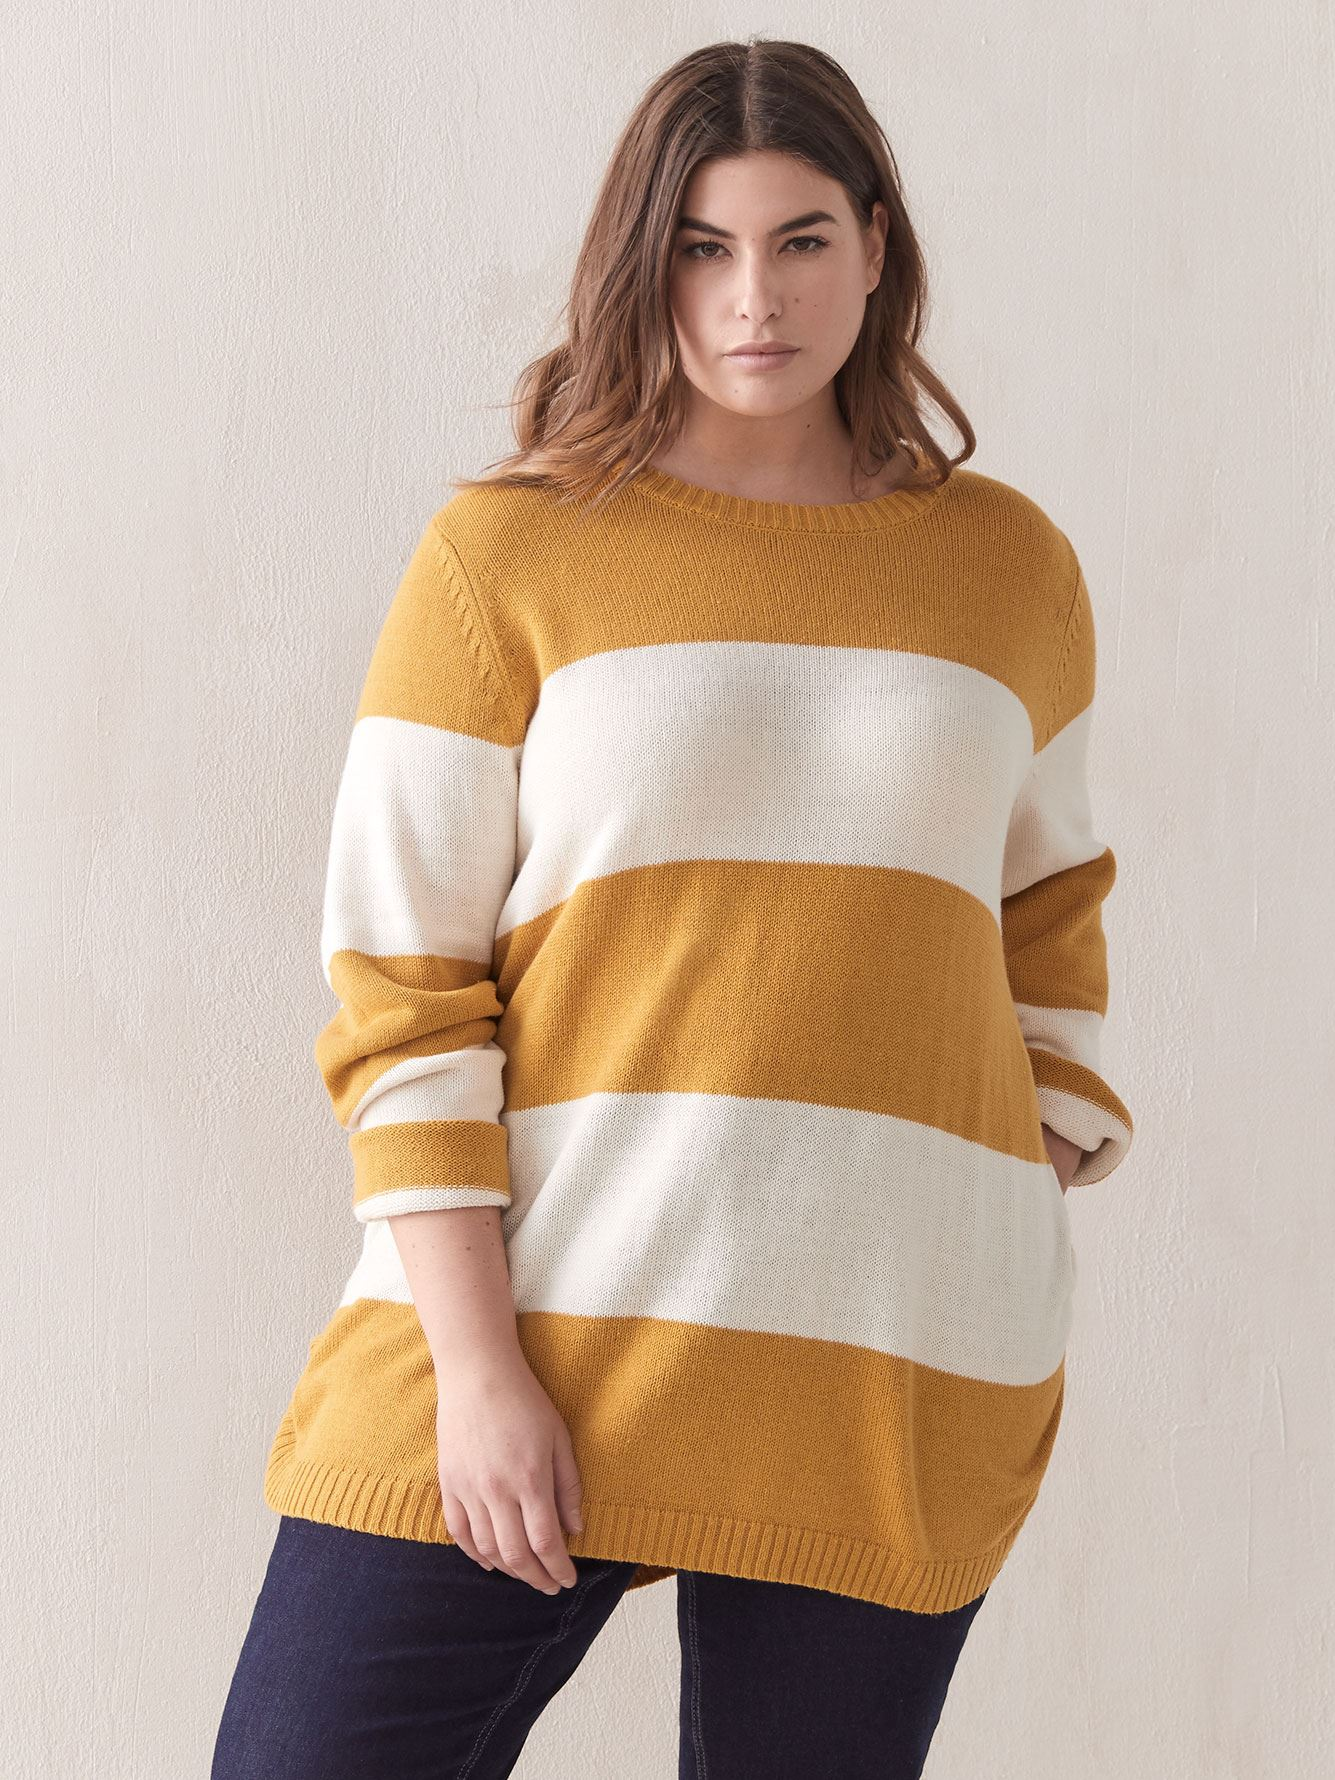 Ribbed Hem Striped Sweater - In Every Story